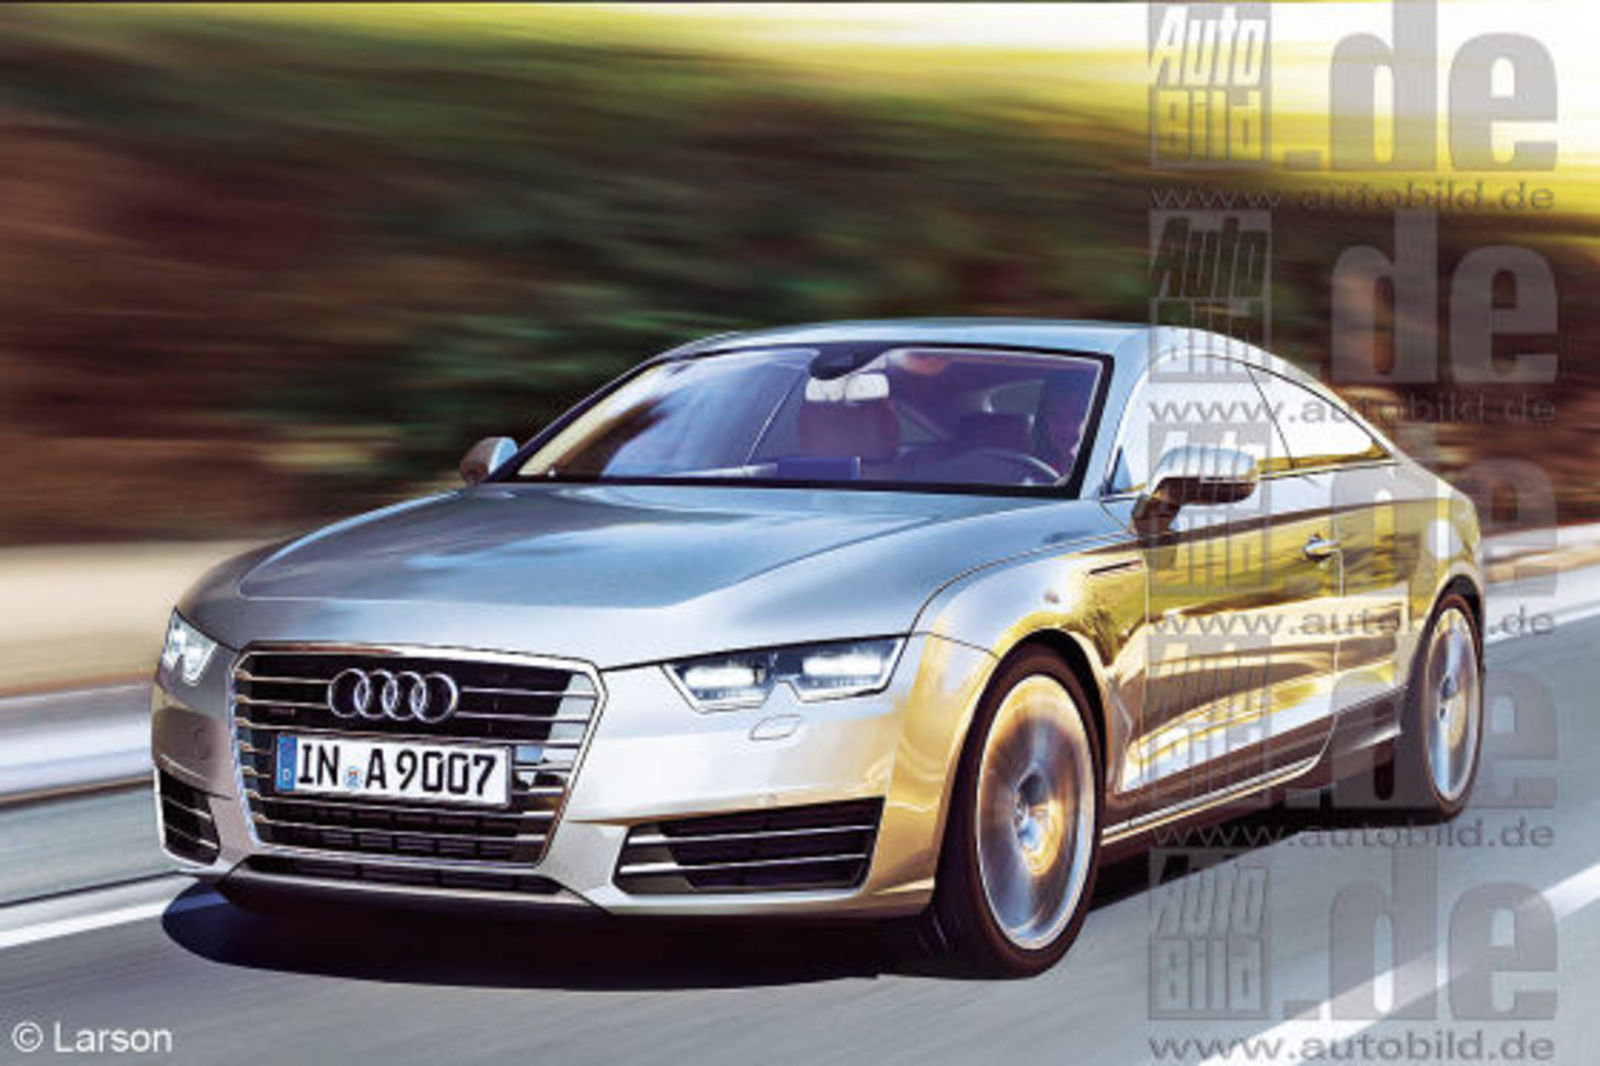 Audi A9 Latest News Reviews Specifications Prices Photos And